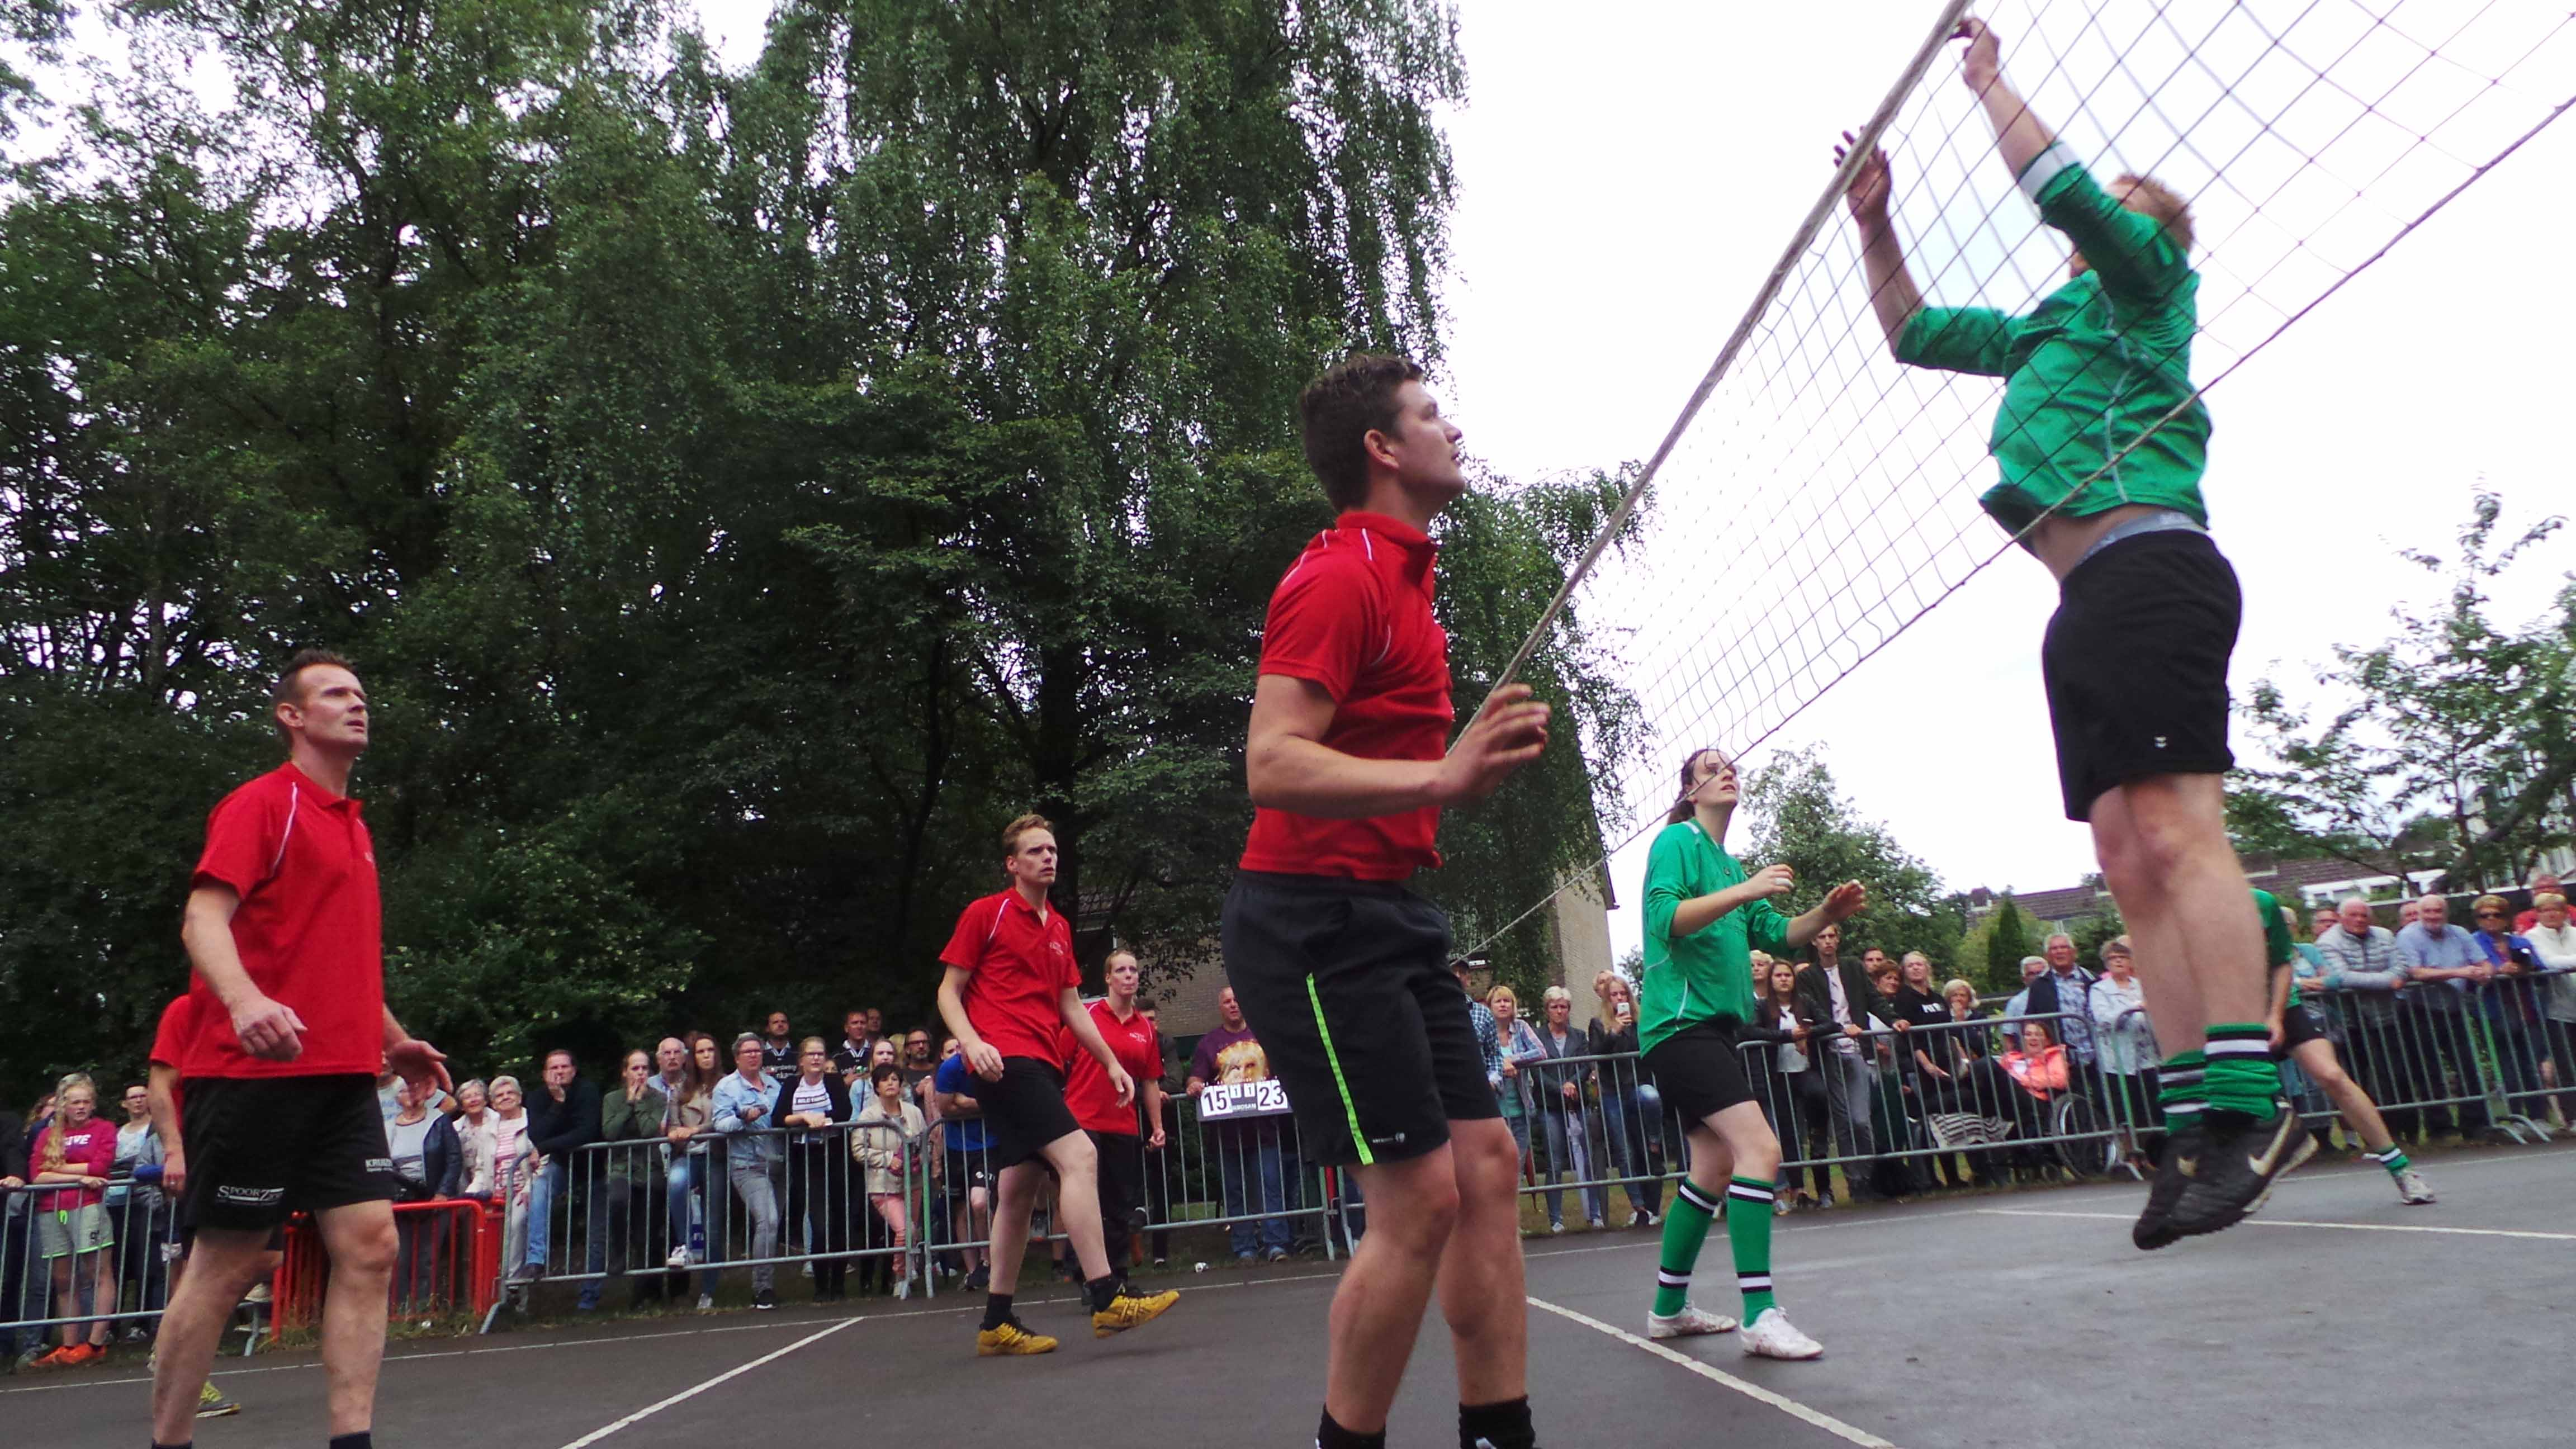 2017-06-29_BB_Straatvolleybal (66)